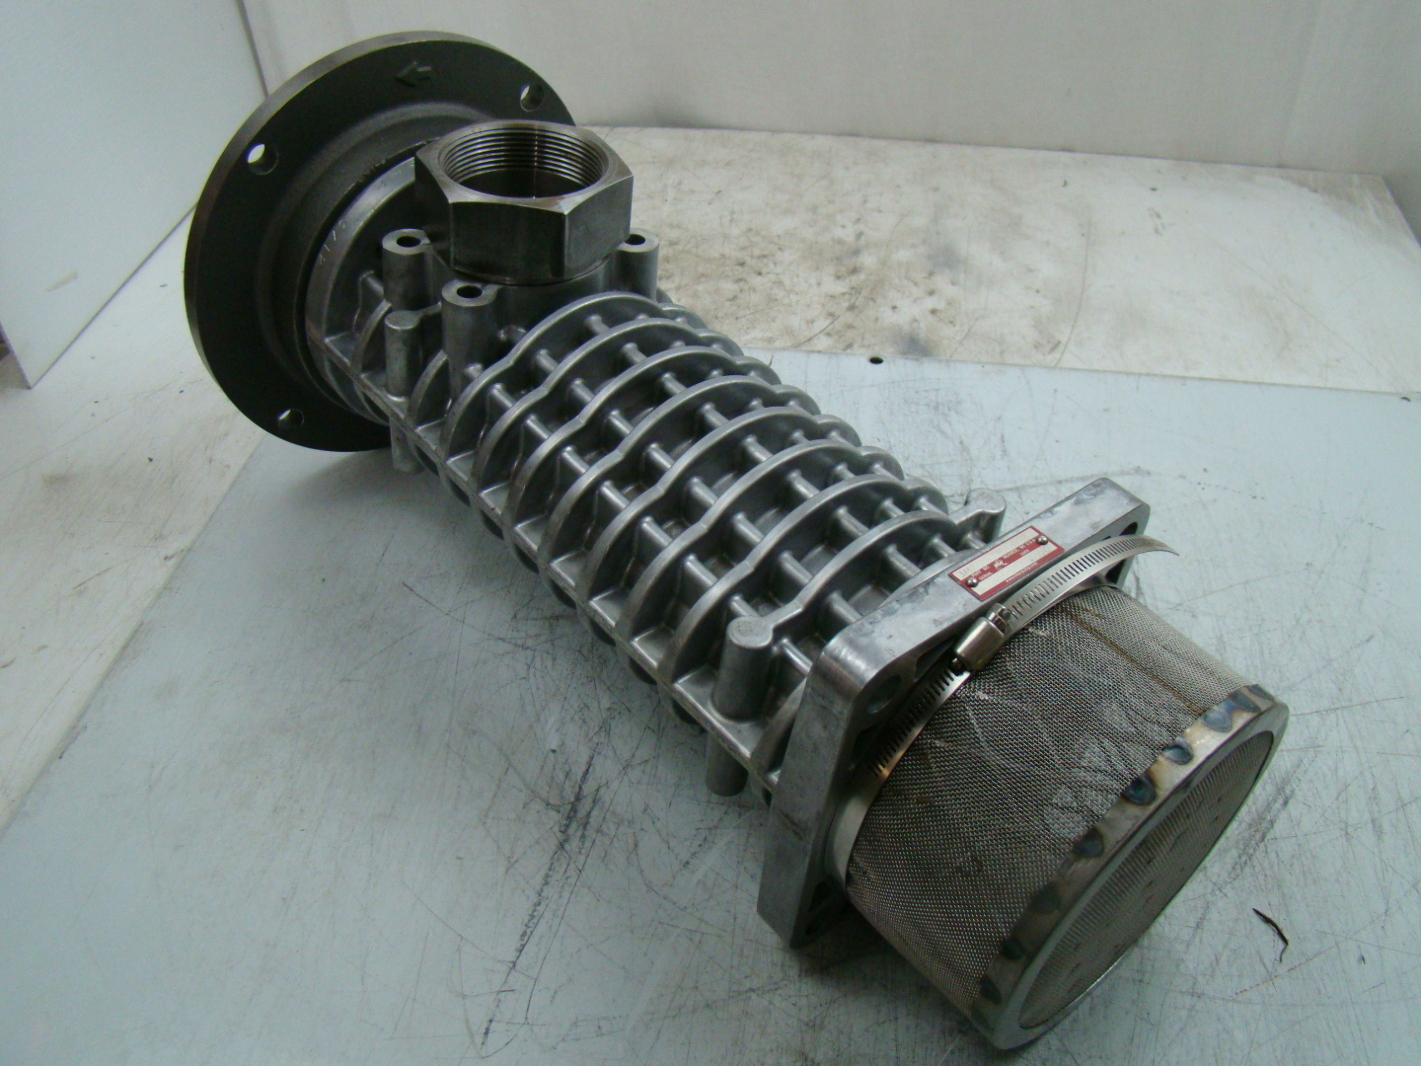 Imo 4pic series submersible hydraulic 3 screw pump c4pic for Submersible hydraulic pump motor